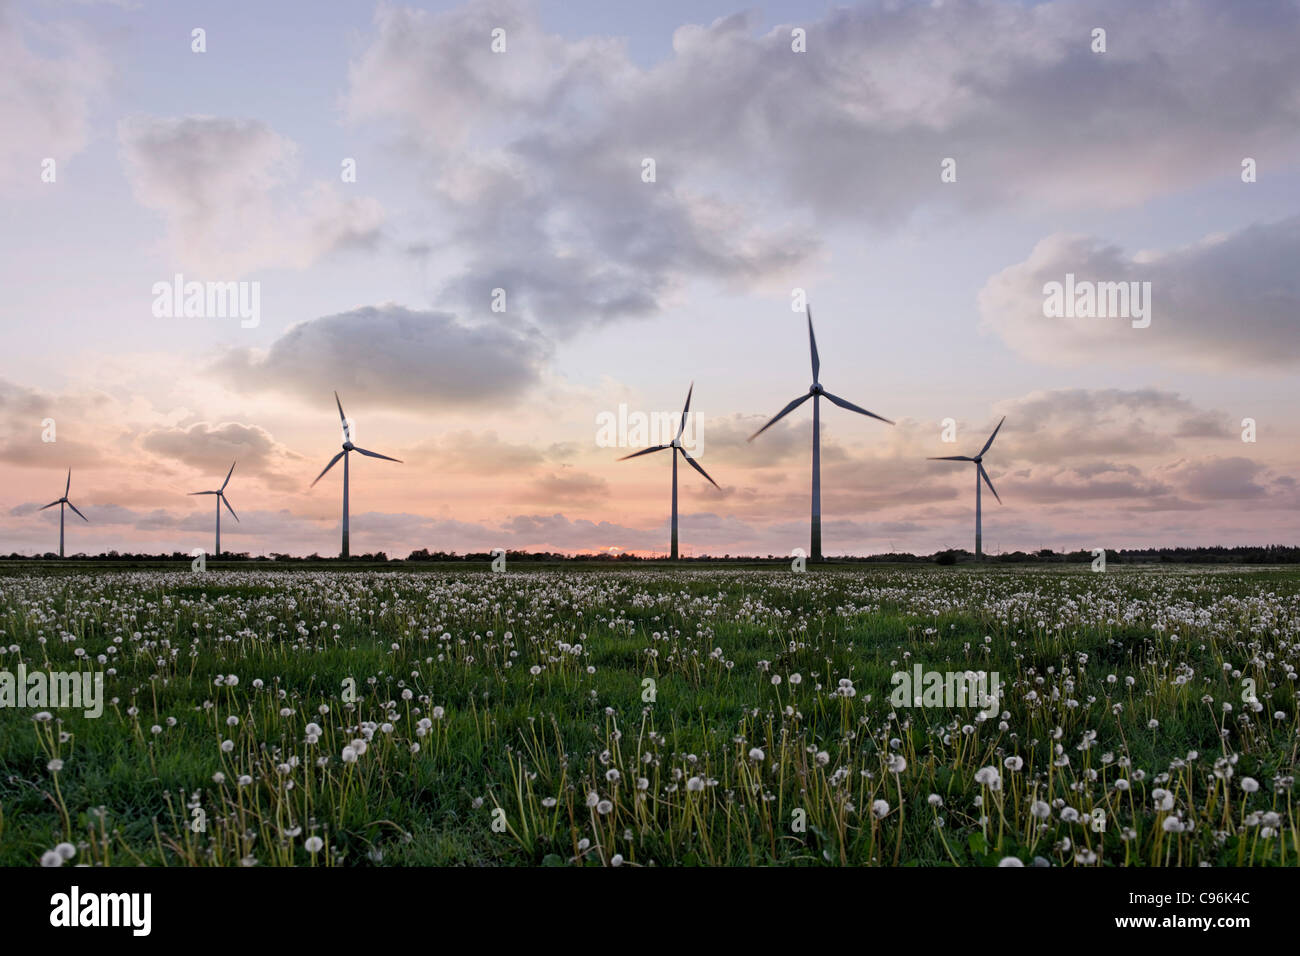 Wind Turbines, Silhouette of windturbines in sunset, wind power plant, fields, wind farm - Stock Image